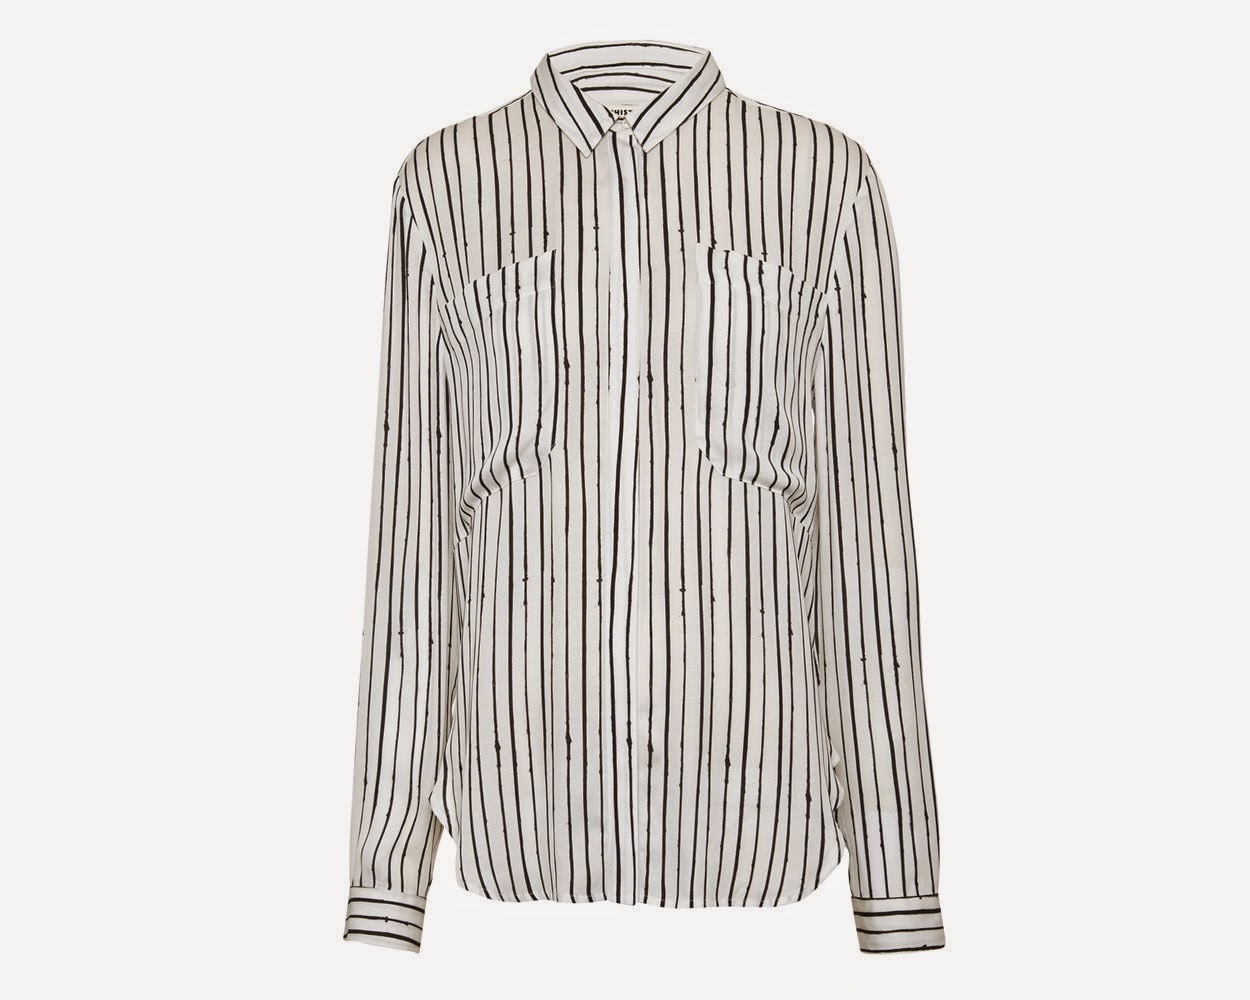 whistles striped shirt, whistles striped blouse,